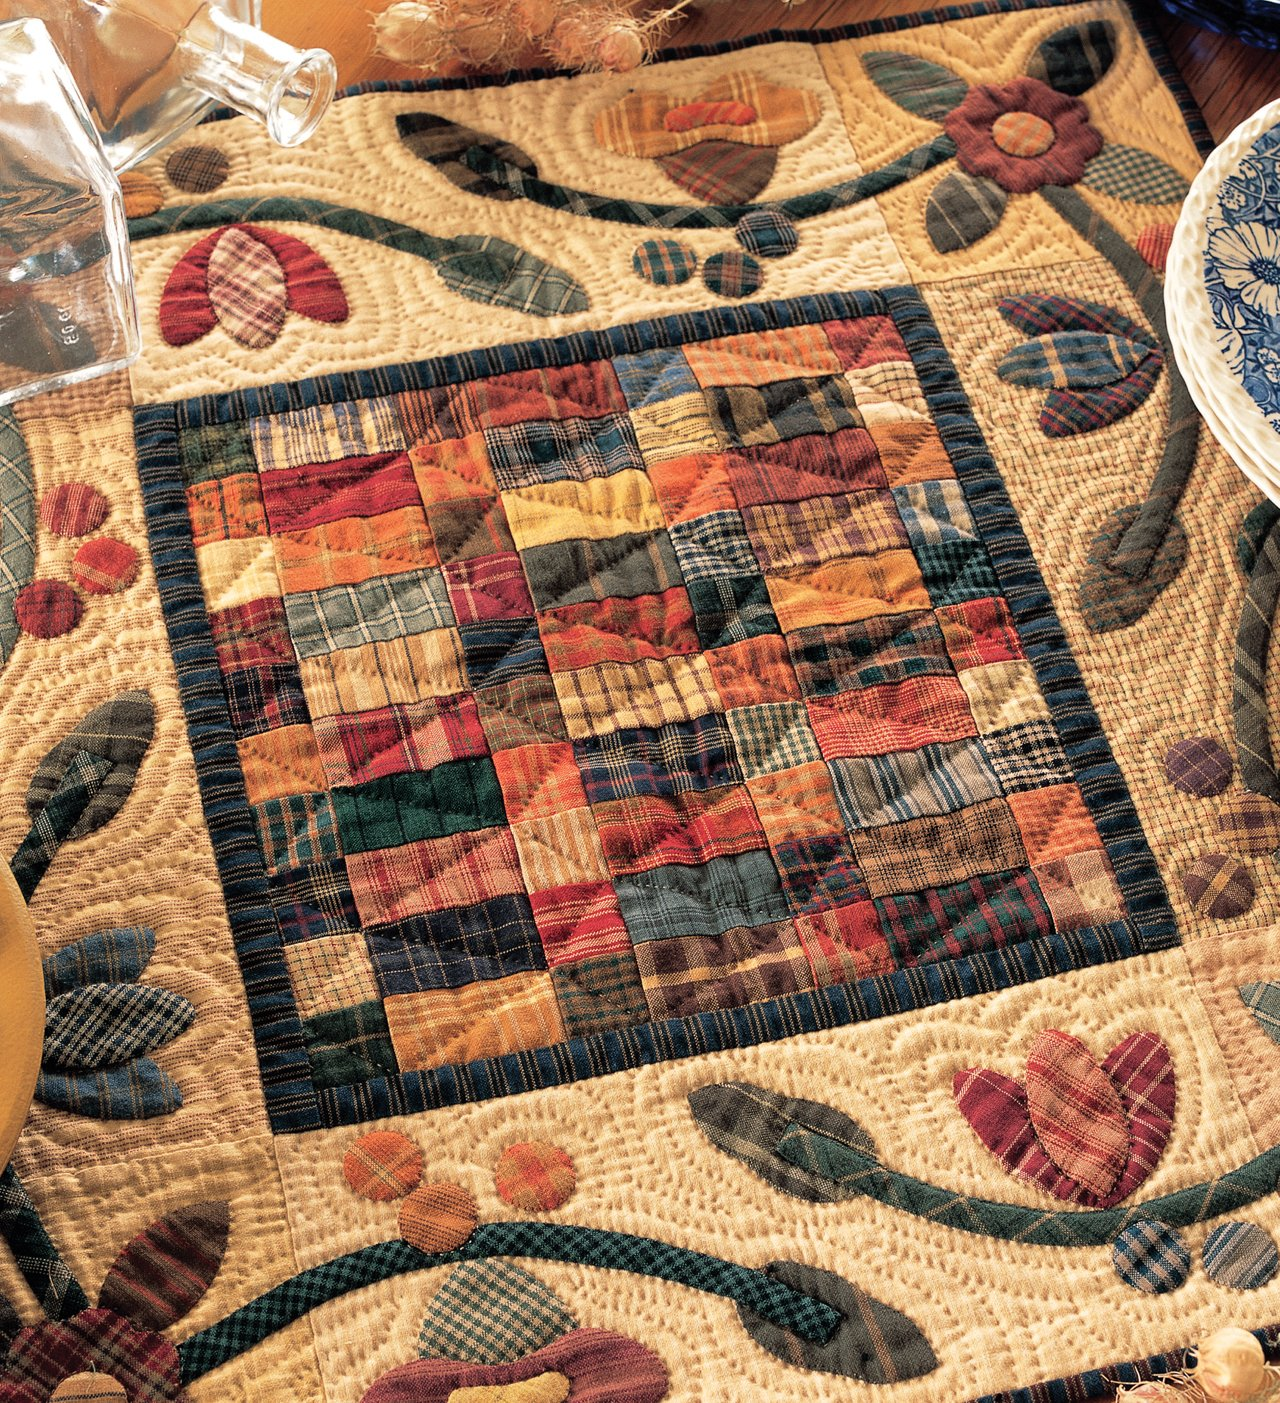 Simple Blessings: 14 Quilts to Grace Your Home: Kim Diehl ... : kim diehl quilts - Adamdwight.com